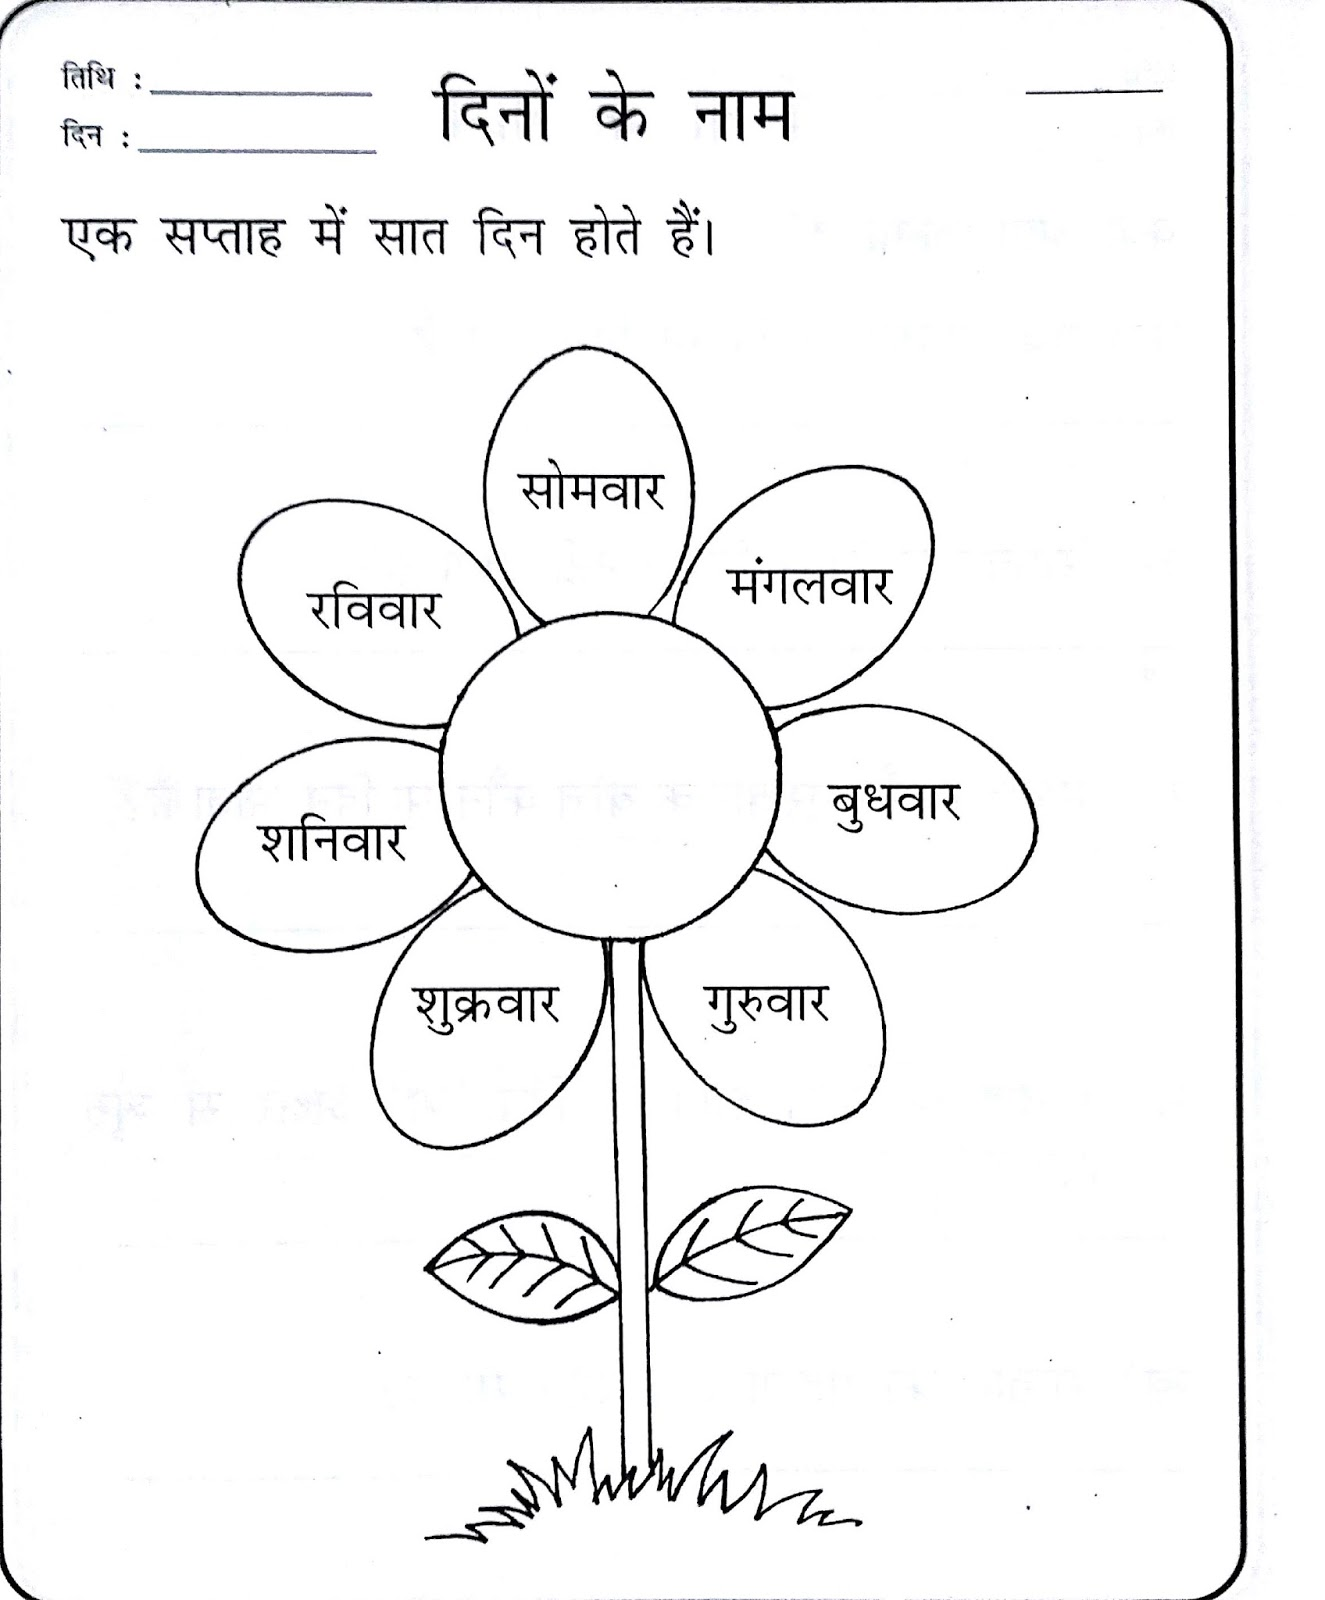 hight resolution of Hindi Worksheets Grade 1   Printable Worksheets and Activities for  Teachers